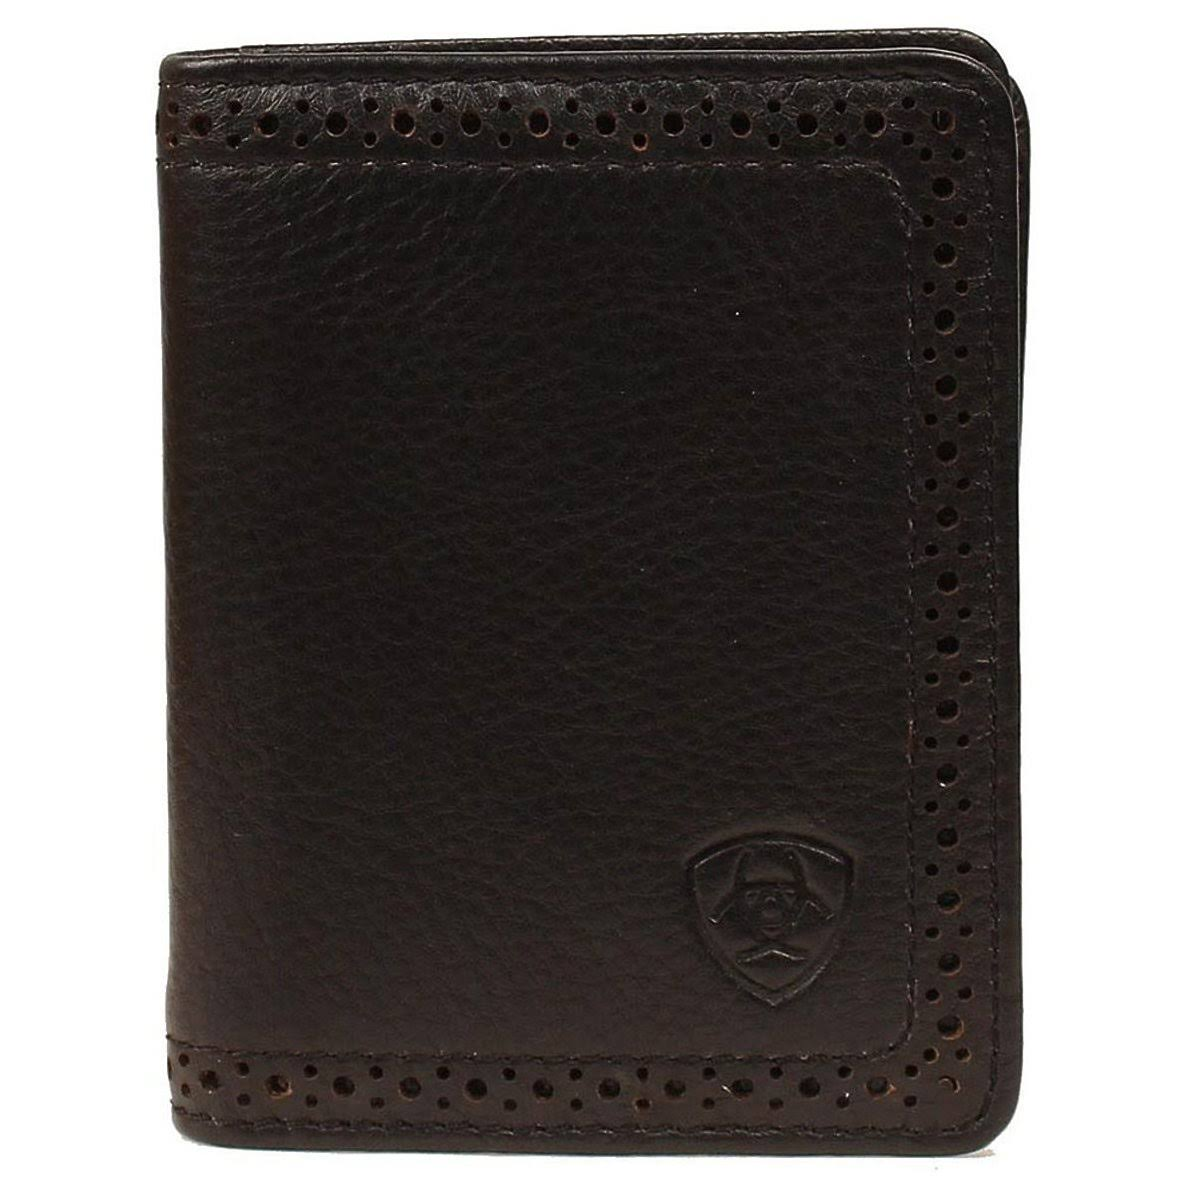 Ariat A3512801 Shield Perforated Edge Bi-Fold Wallet Black - One Size